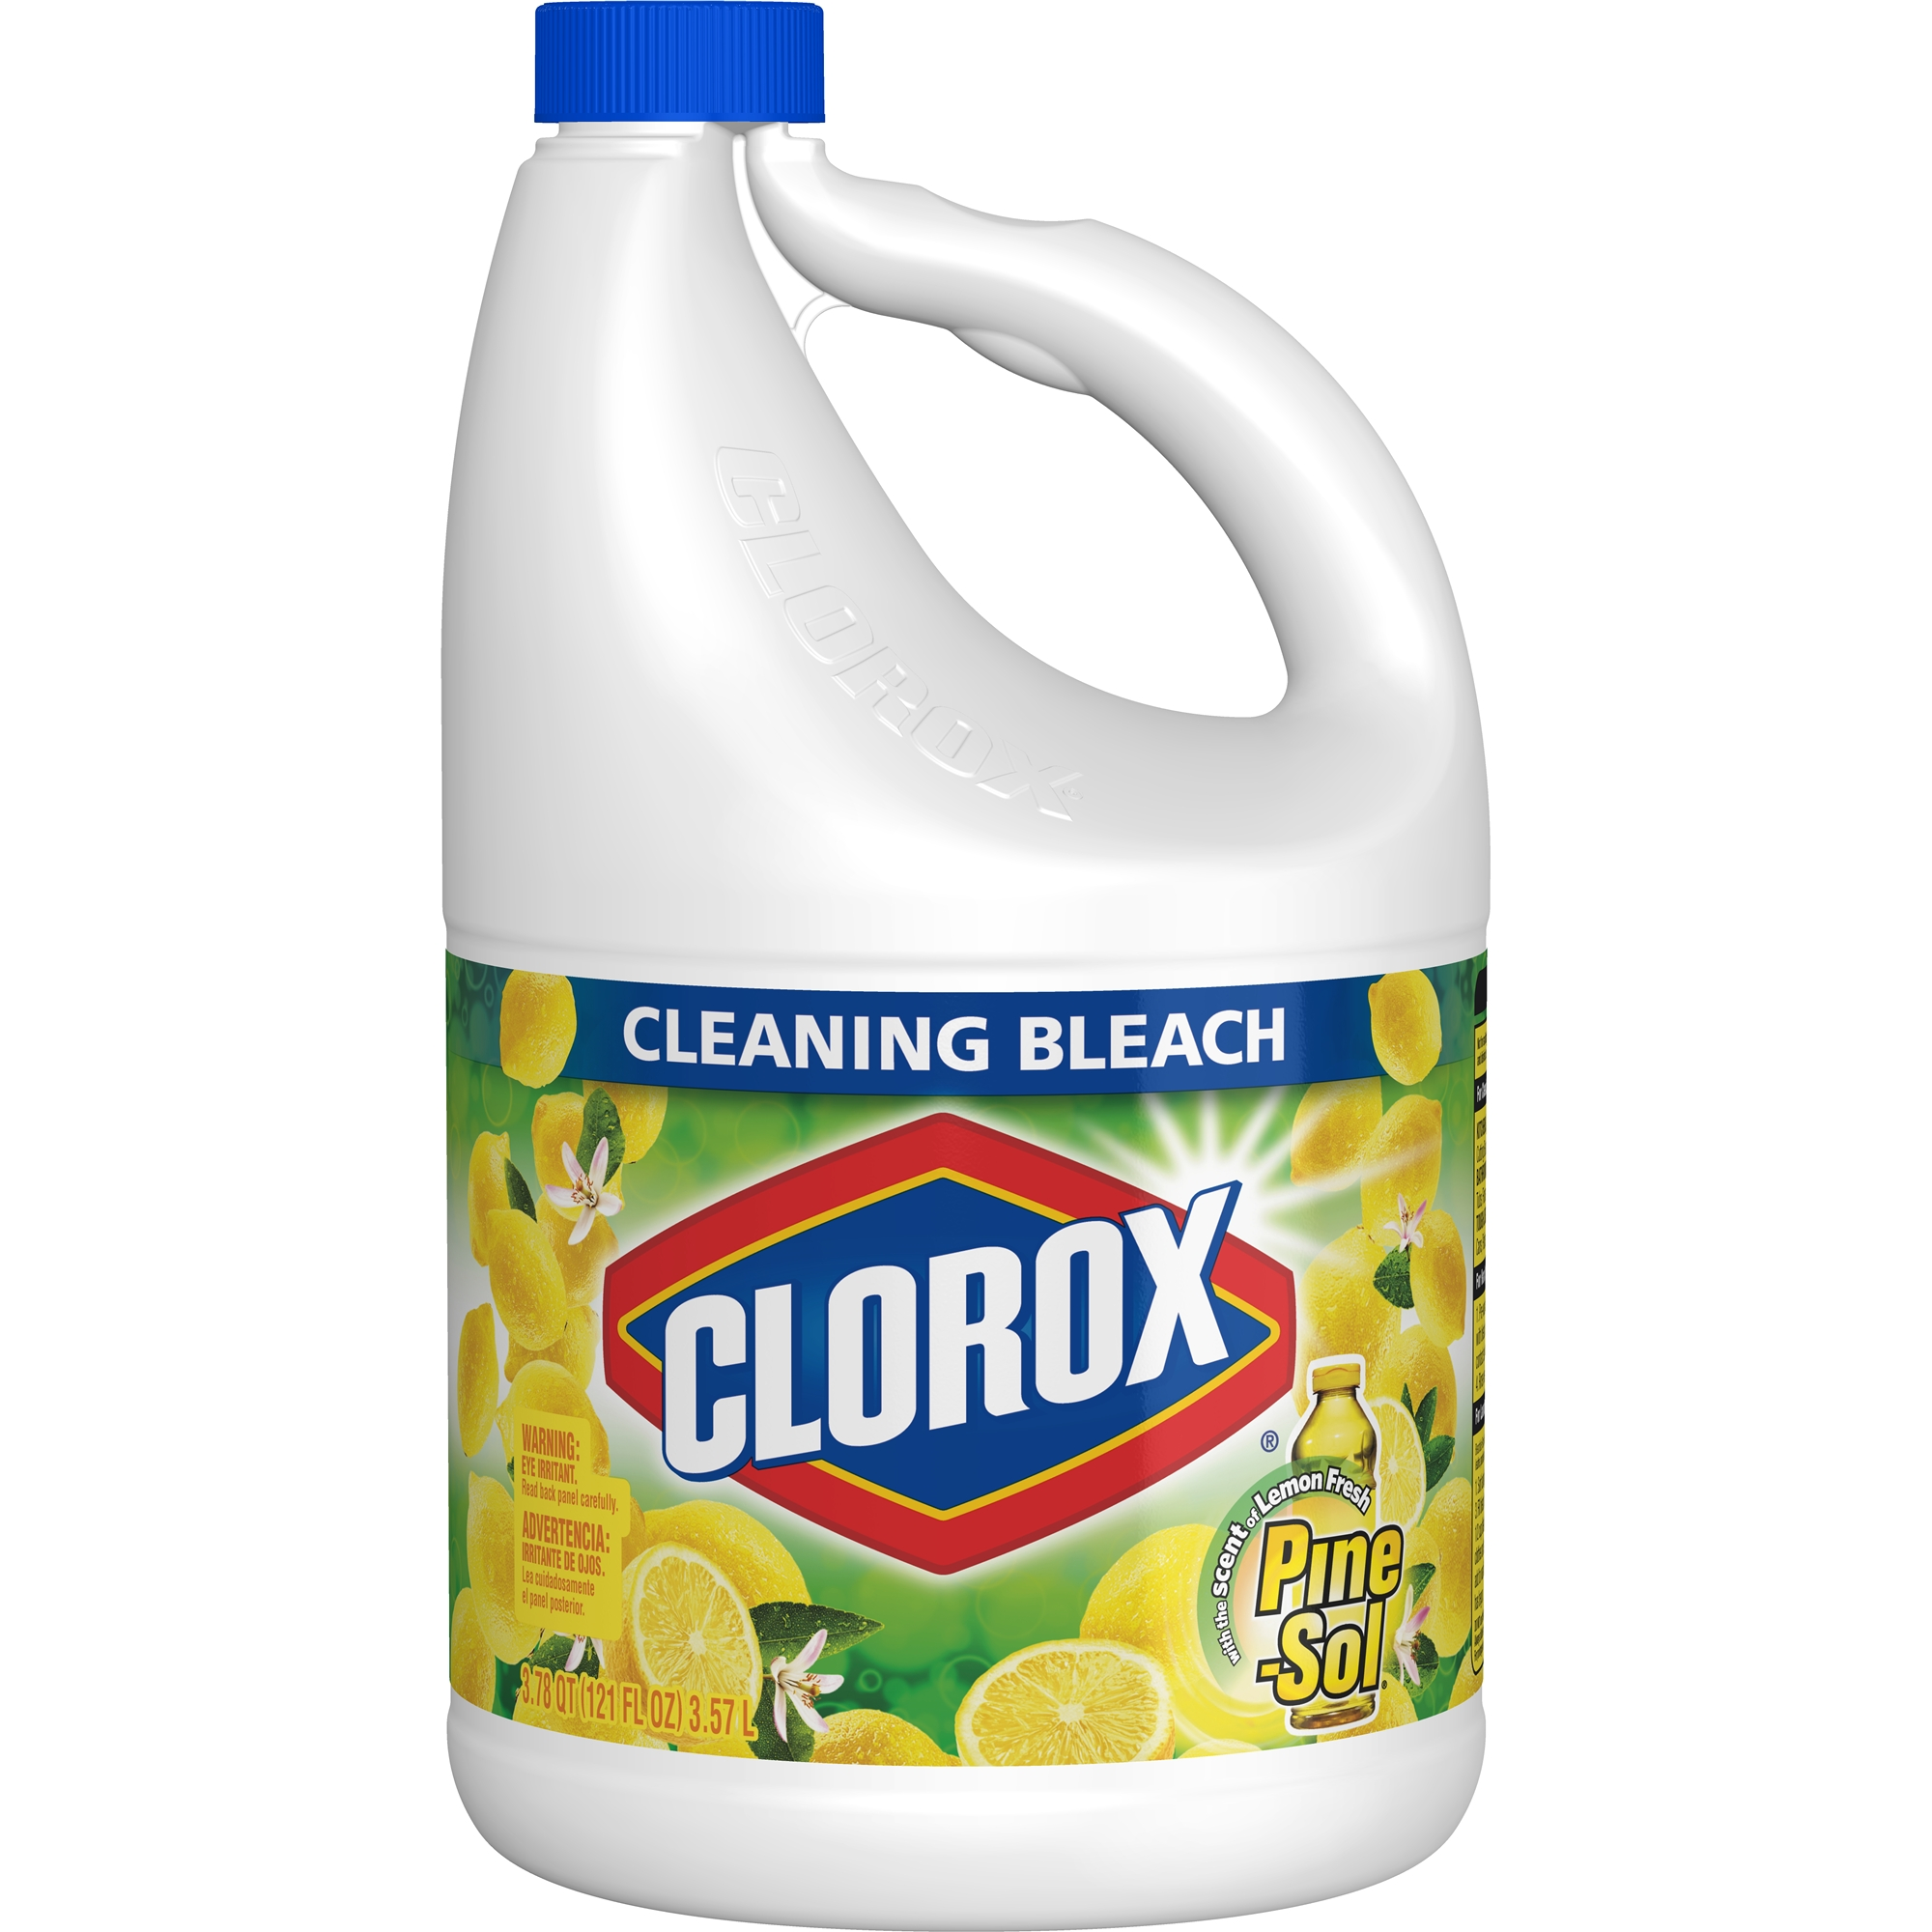 Clorox Cleaning Bleach, Lemon Fresh Pine-Sol Scent, 121 oz